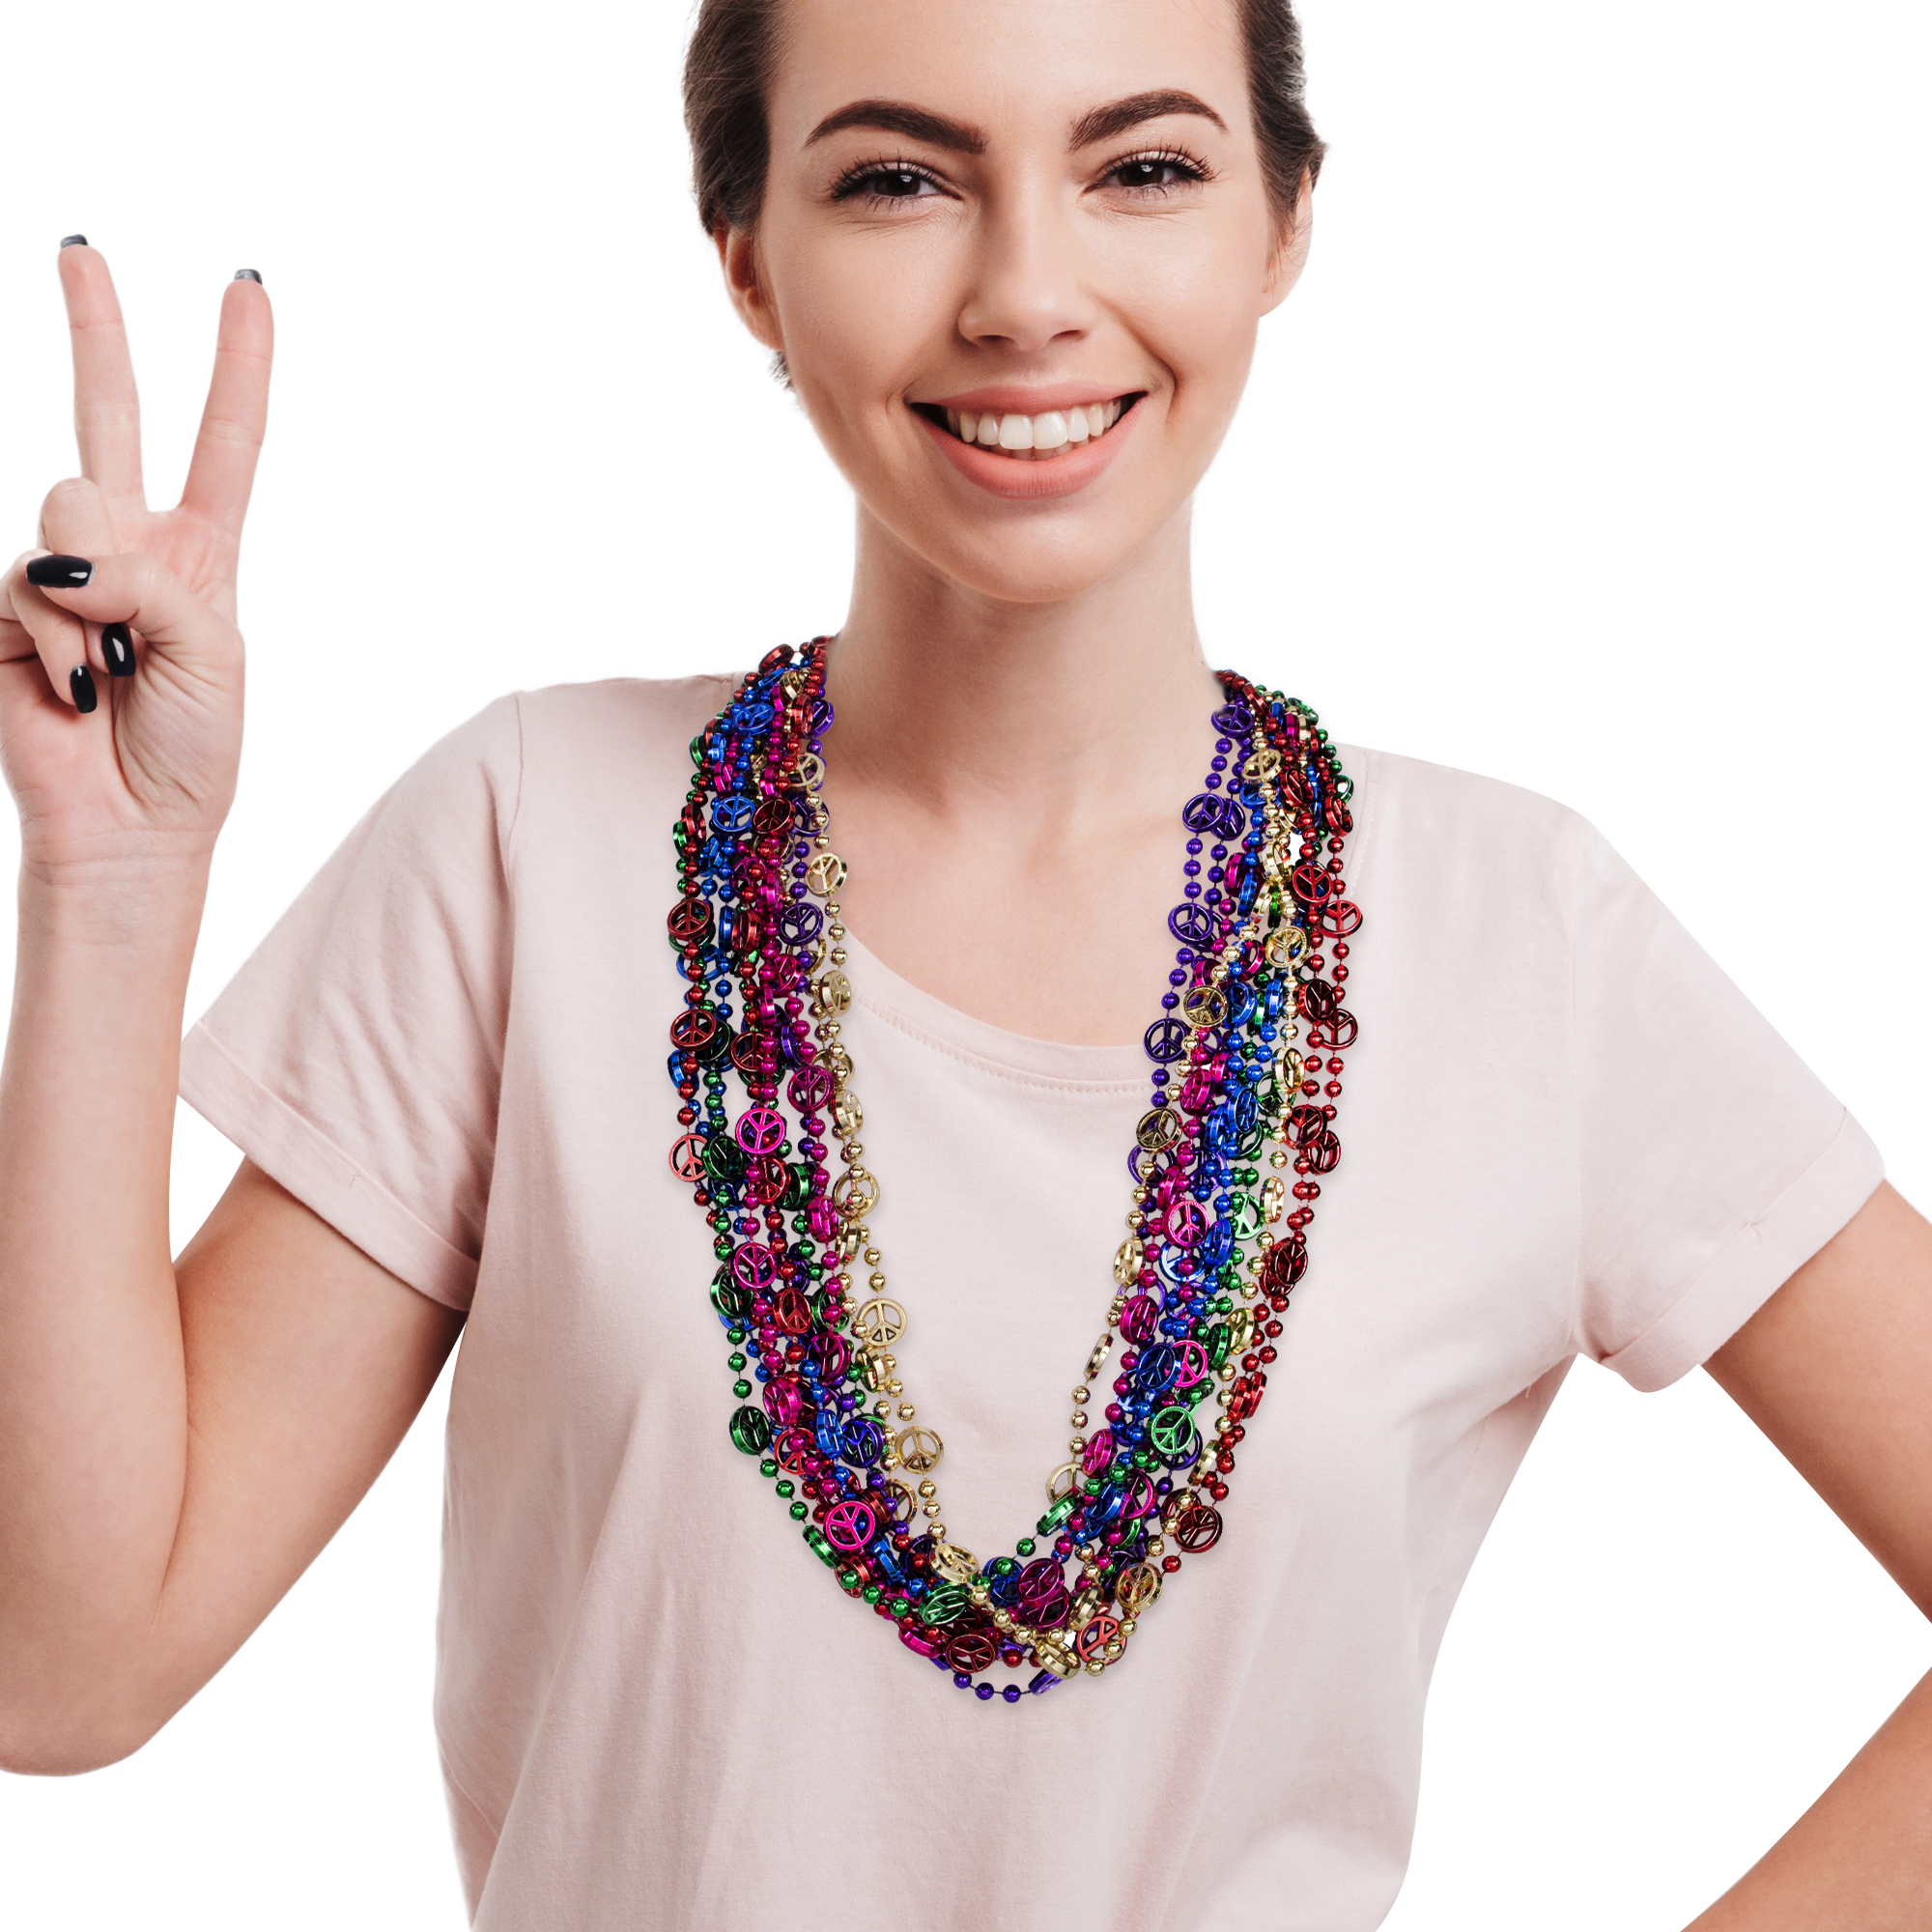 33 INCH PEACE SIGN BEAD NECKLACES